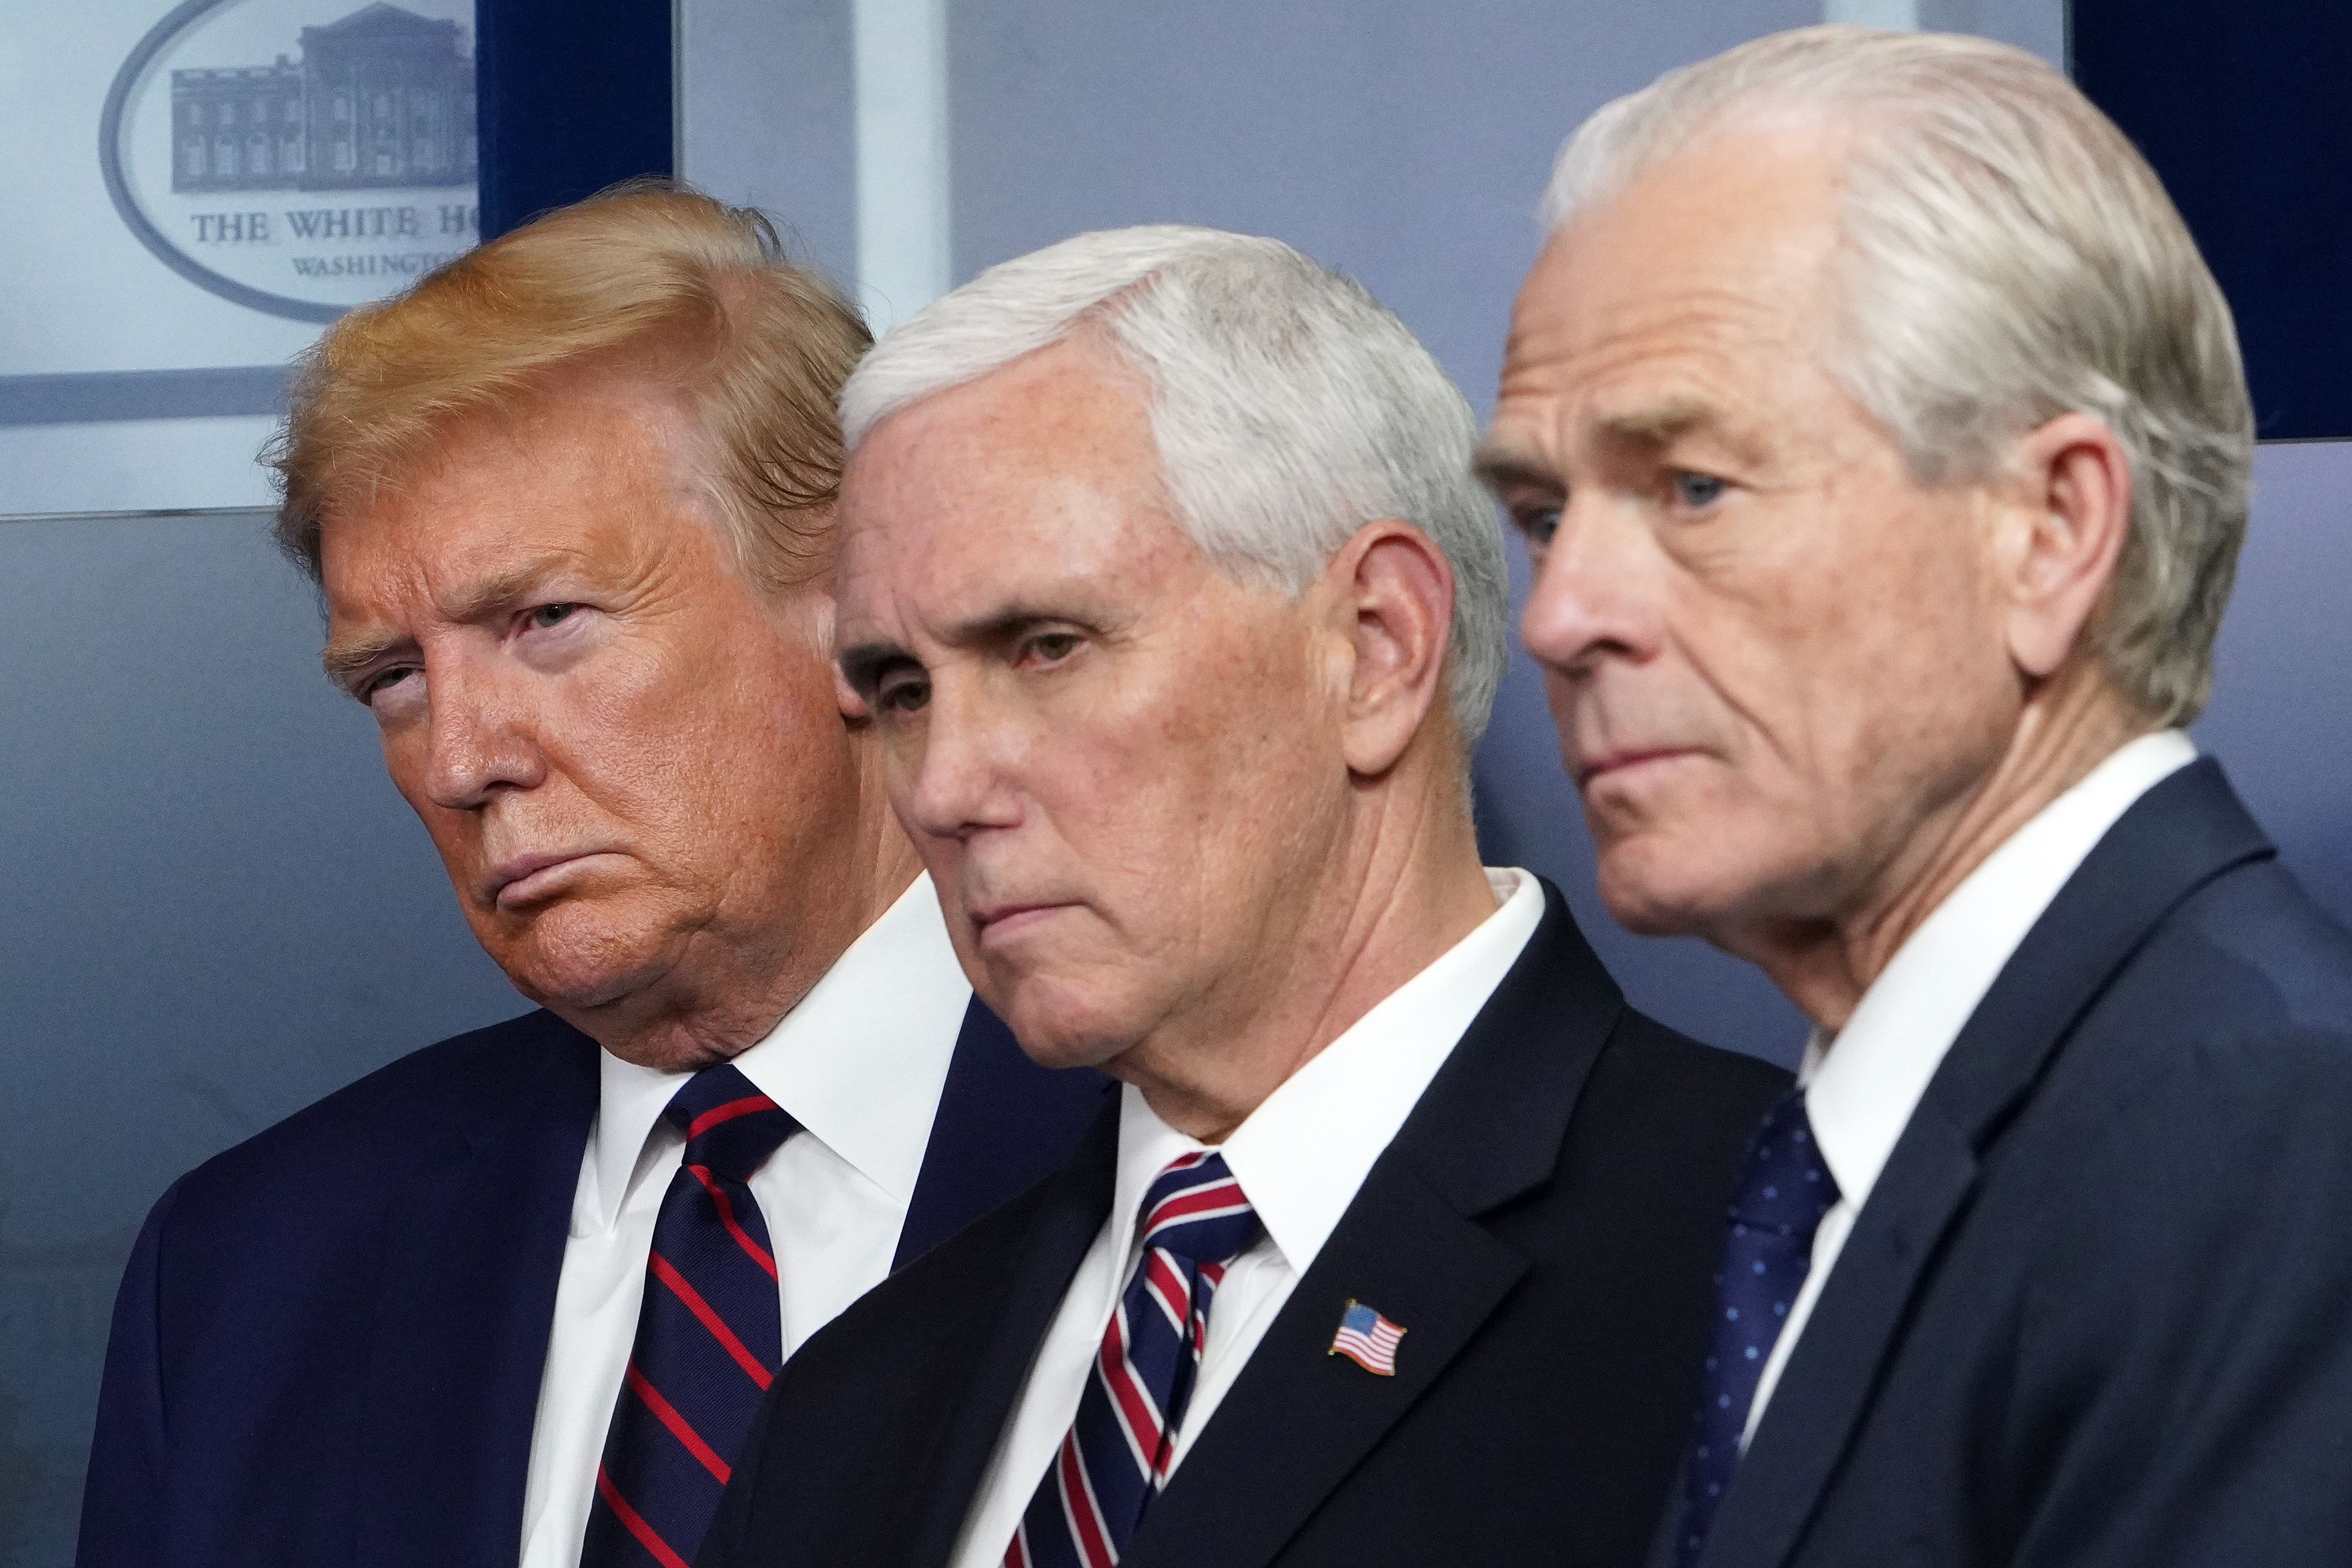 (From L) US President Donald Trump, US Vice President Mike Pence and Director of Trade and Manufacturing Policy Peter Navarro look on during the daily briefing on the novel coronavirus, COVID-19, in the Brady Briefing Room at the White House on April 2, 2020, in Washington, DC. (Photo by MANDEL NGAN/AFP via Getty Images)